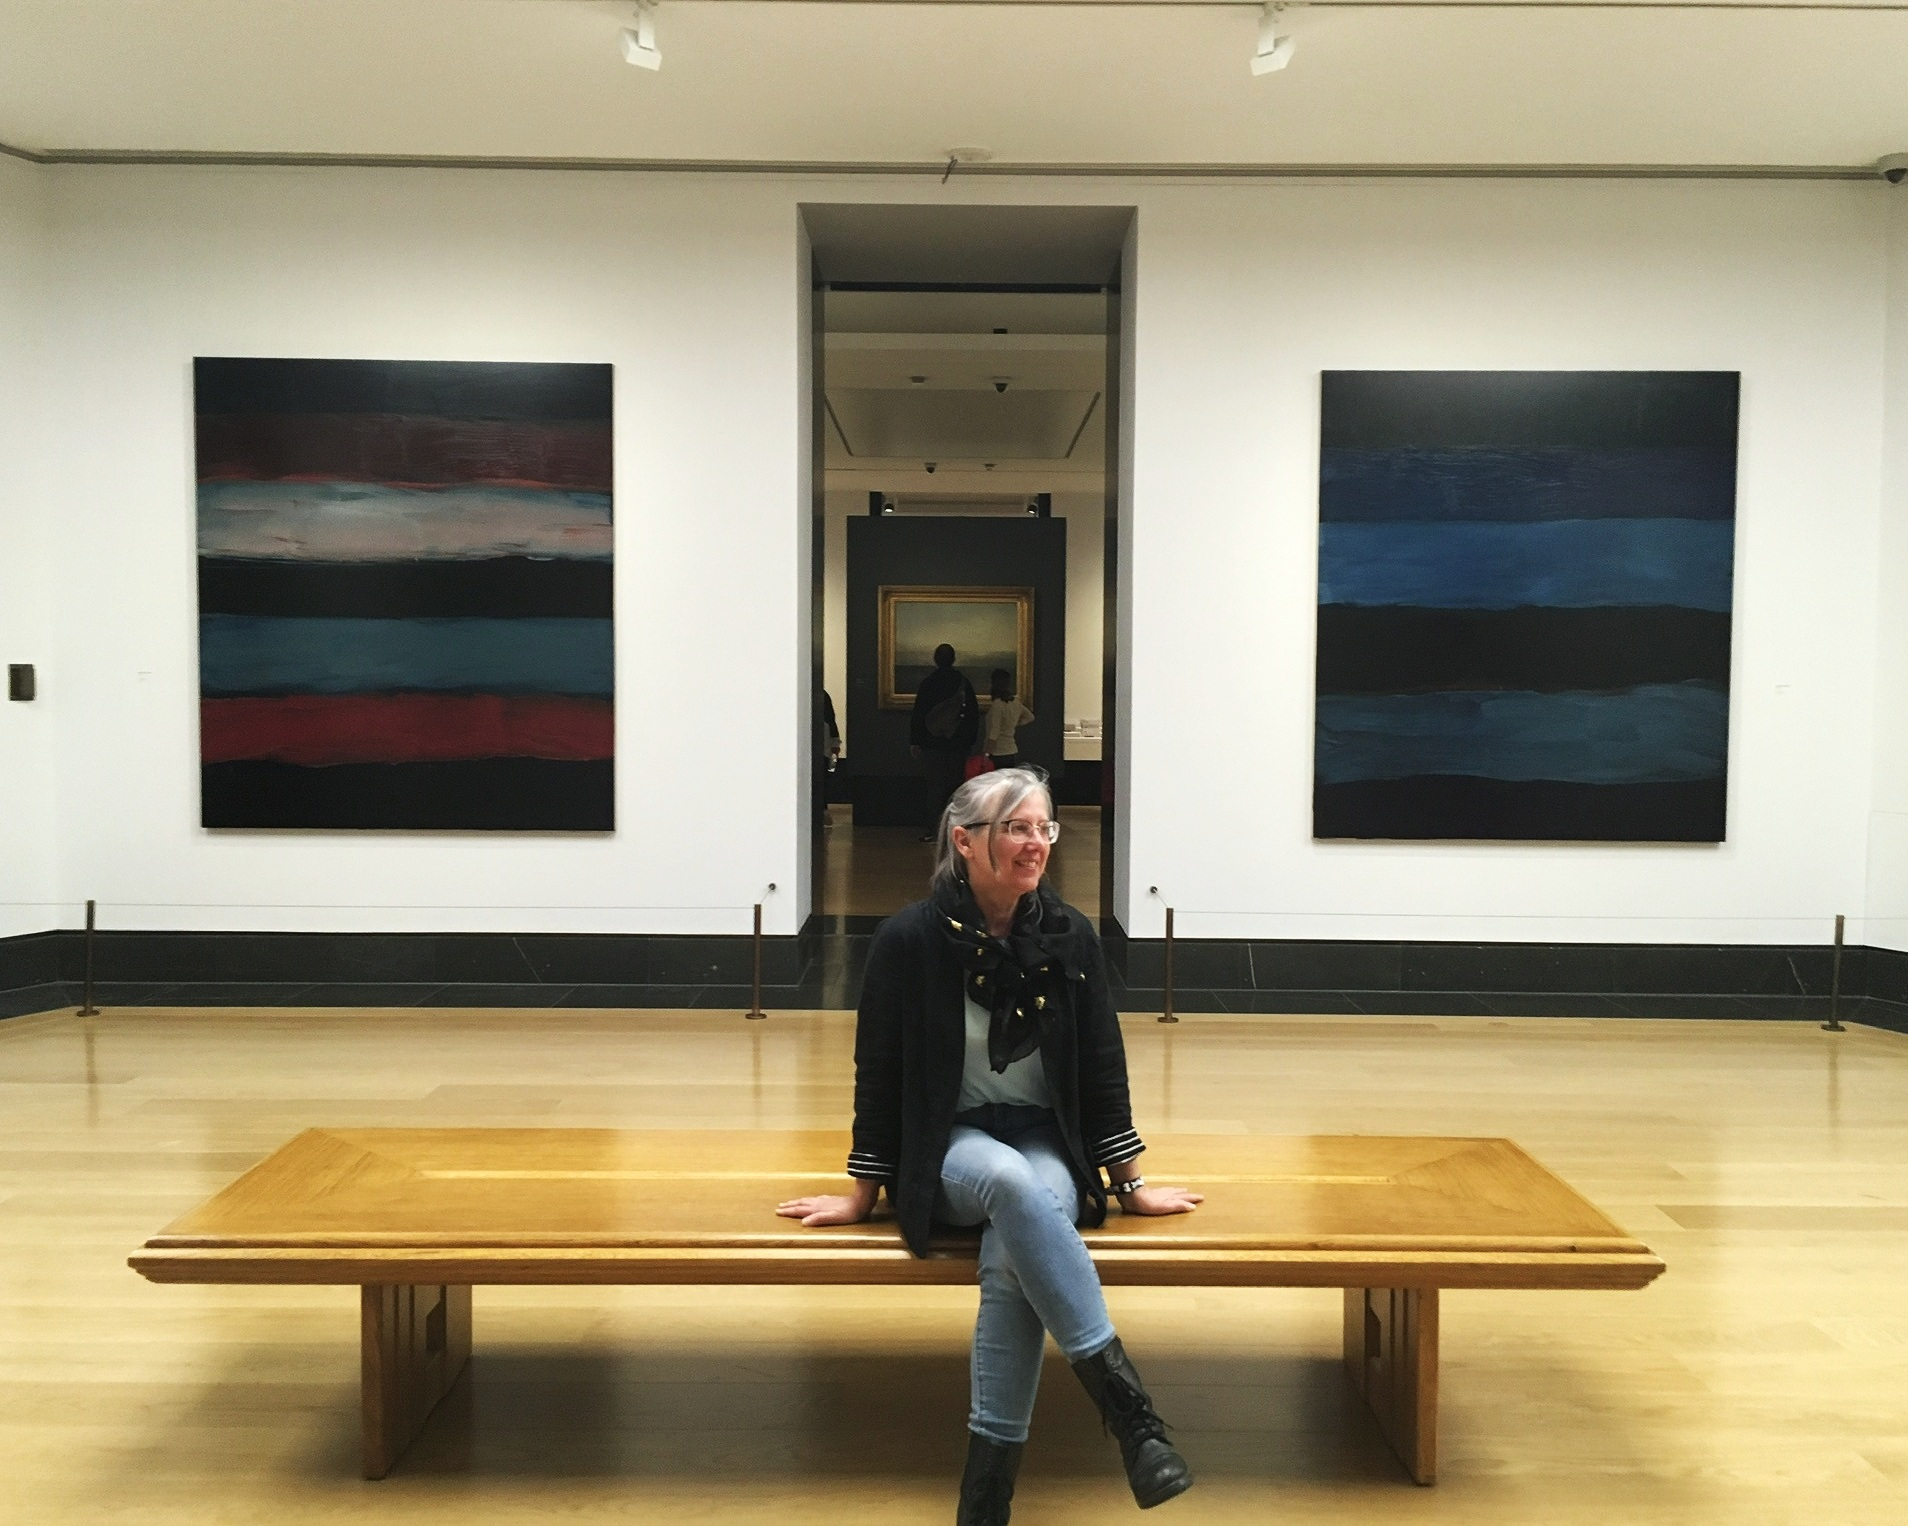 Meet field school blogger Angela, pictured here enjoying a Sean Scully exhibition at the National Gallery.